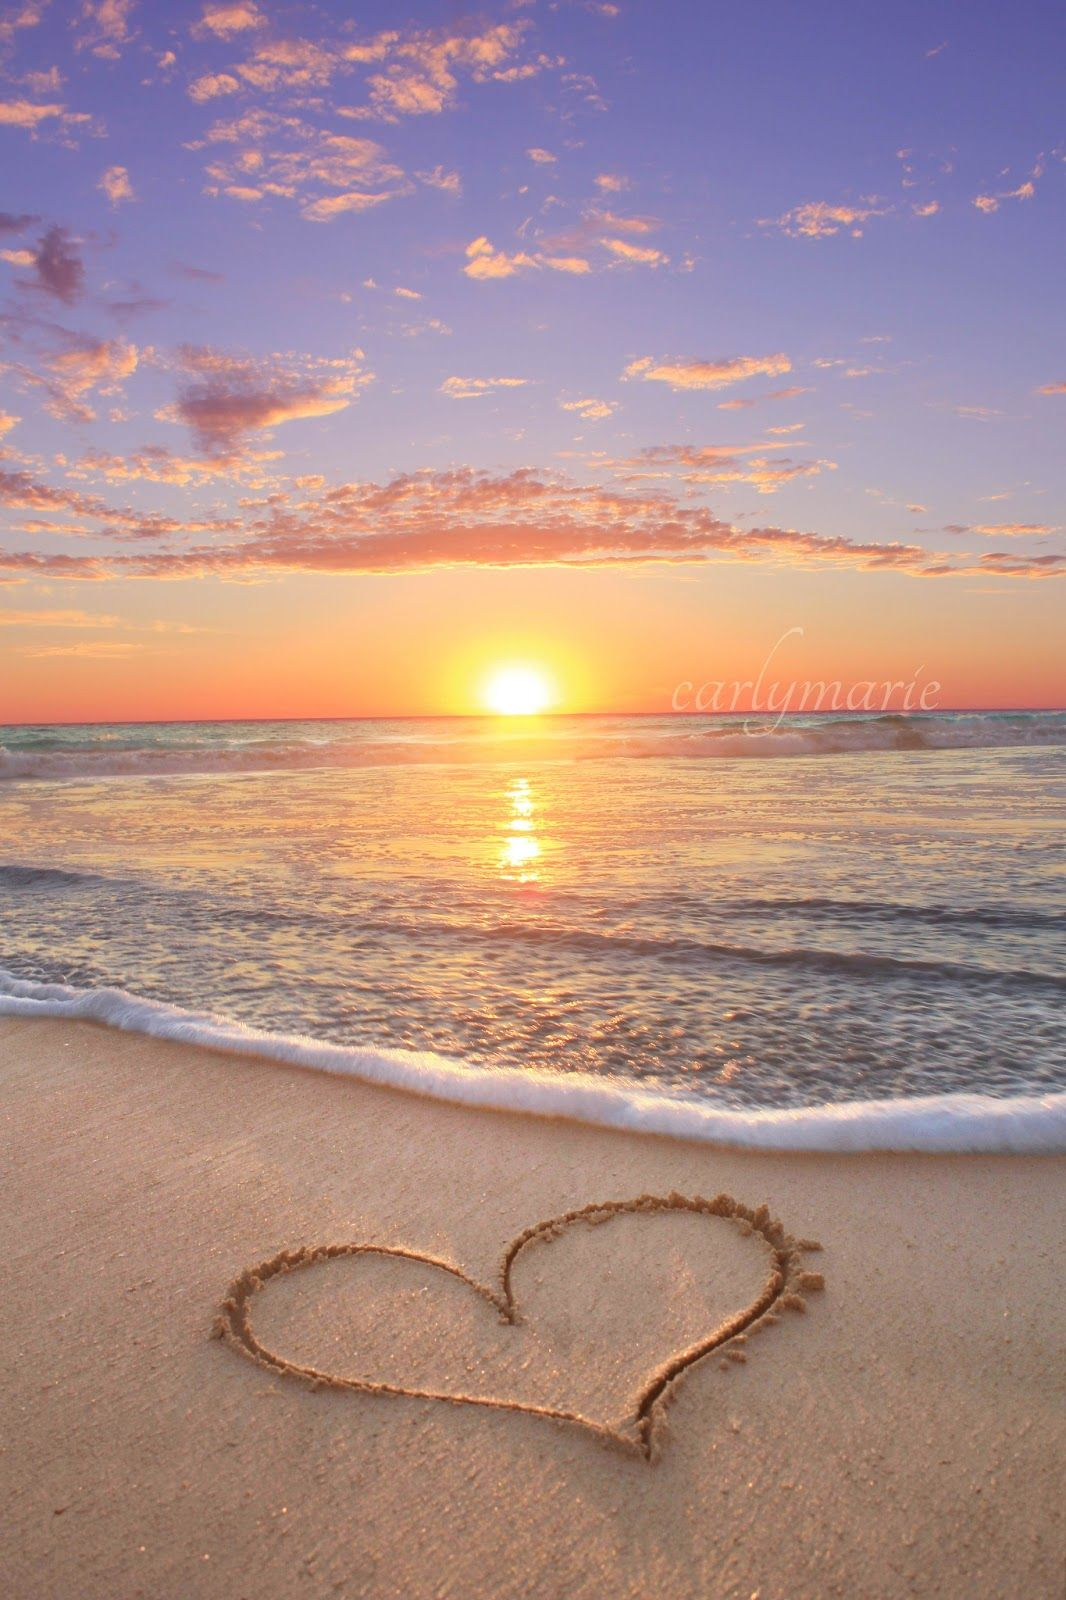 Pin on LoVe LeTTeRs & TrEaSuReS of ALOHA.. on the Sand